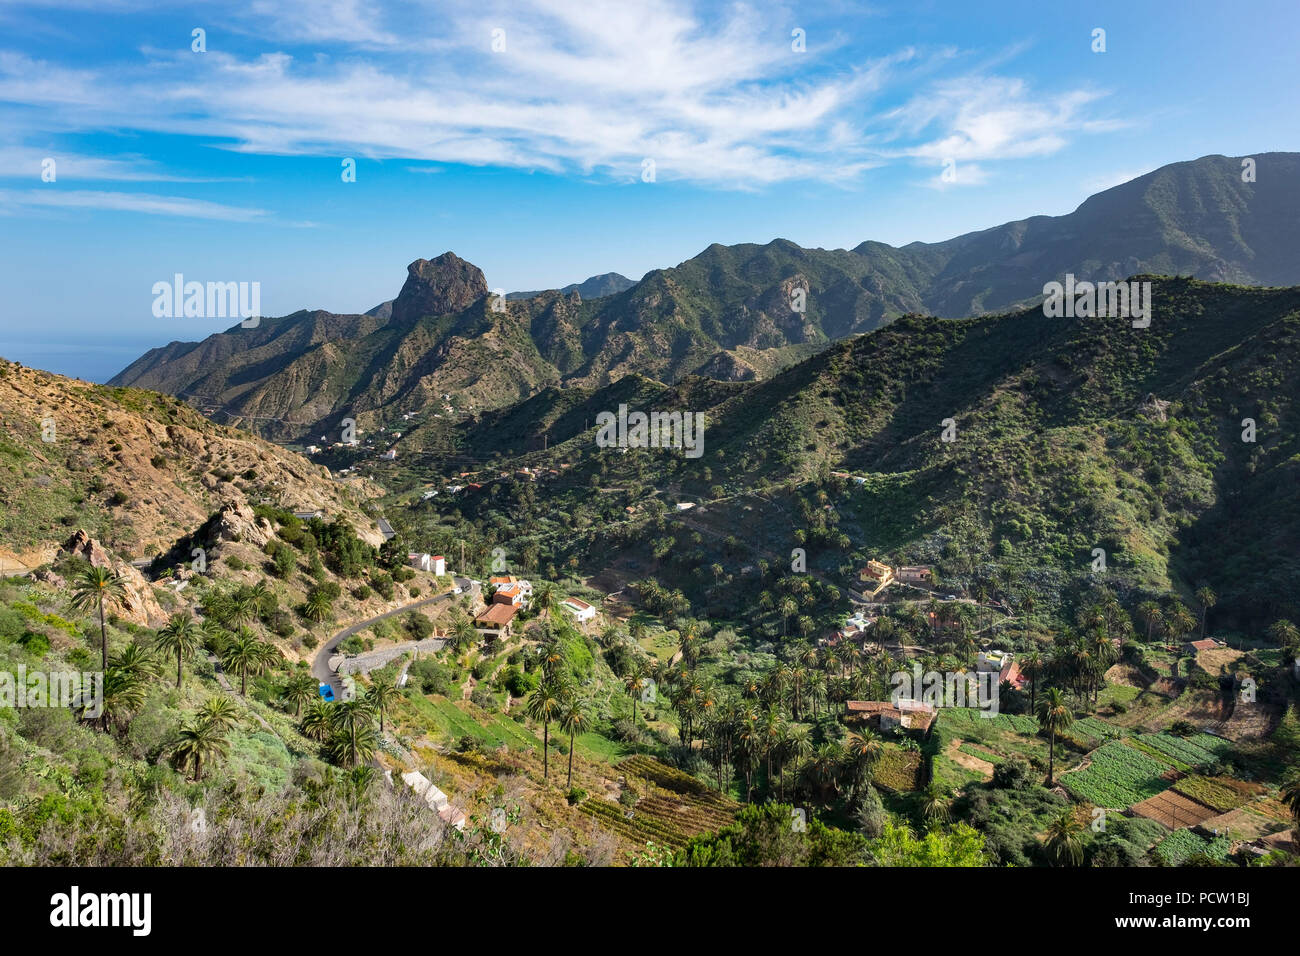 Vallehermoso with Roque Cano, La Gomera, Canary Islands, Canaries, Spain - Stock Image